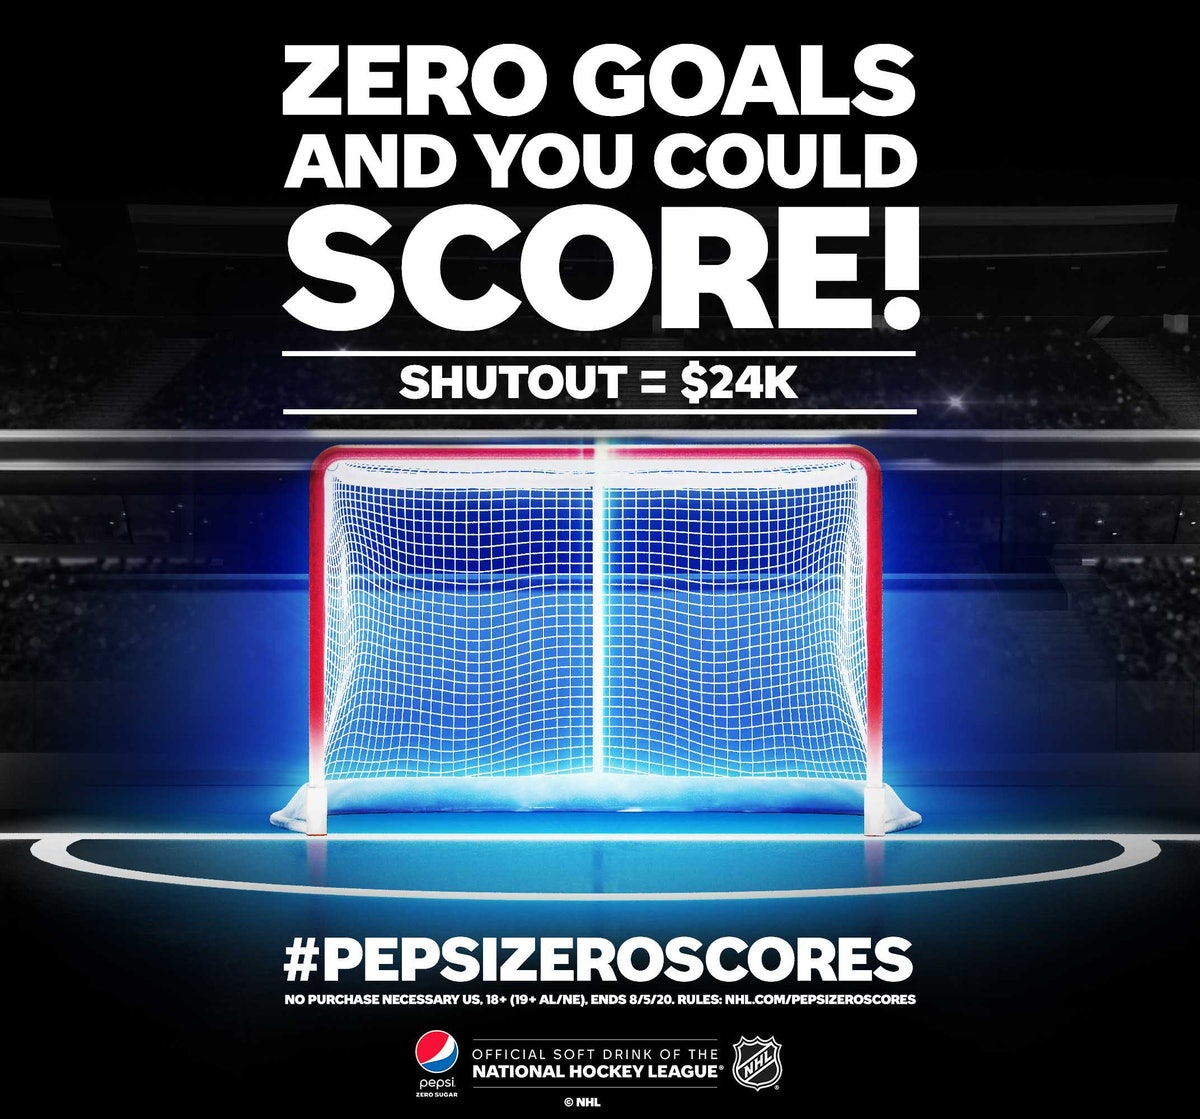 The Pepsi Zero Scores 2020 NHL Sweepstakes could win you $24,000.